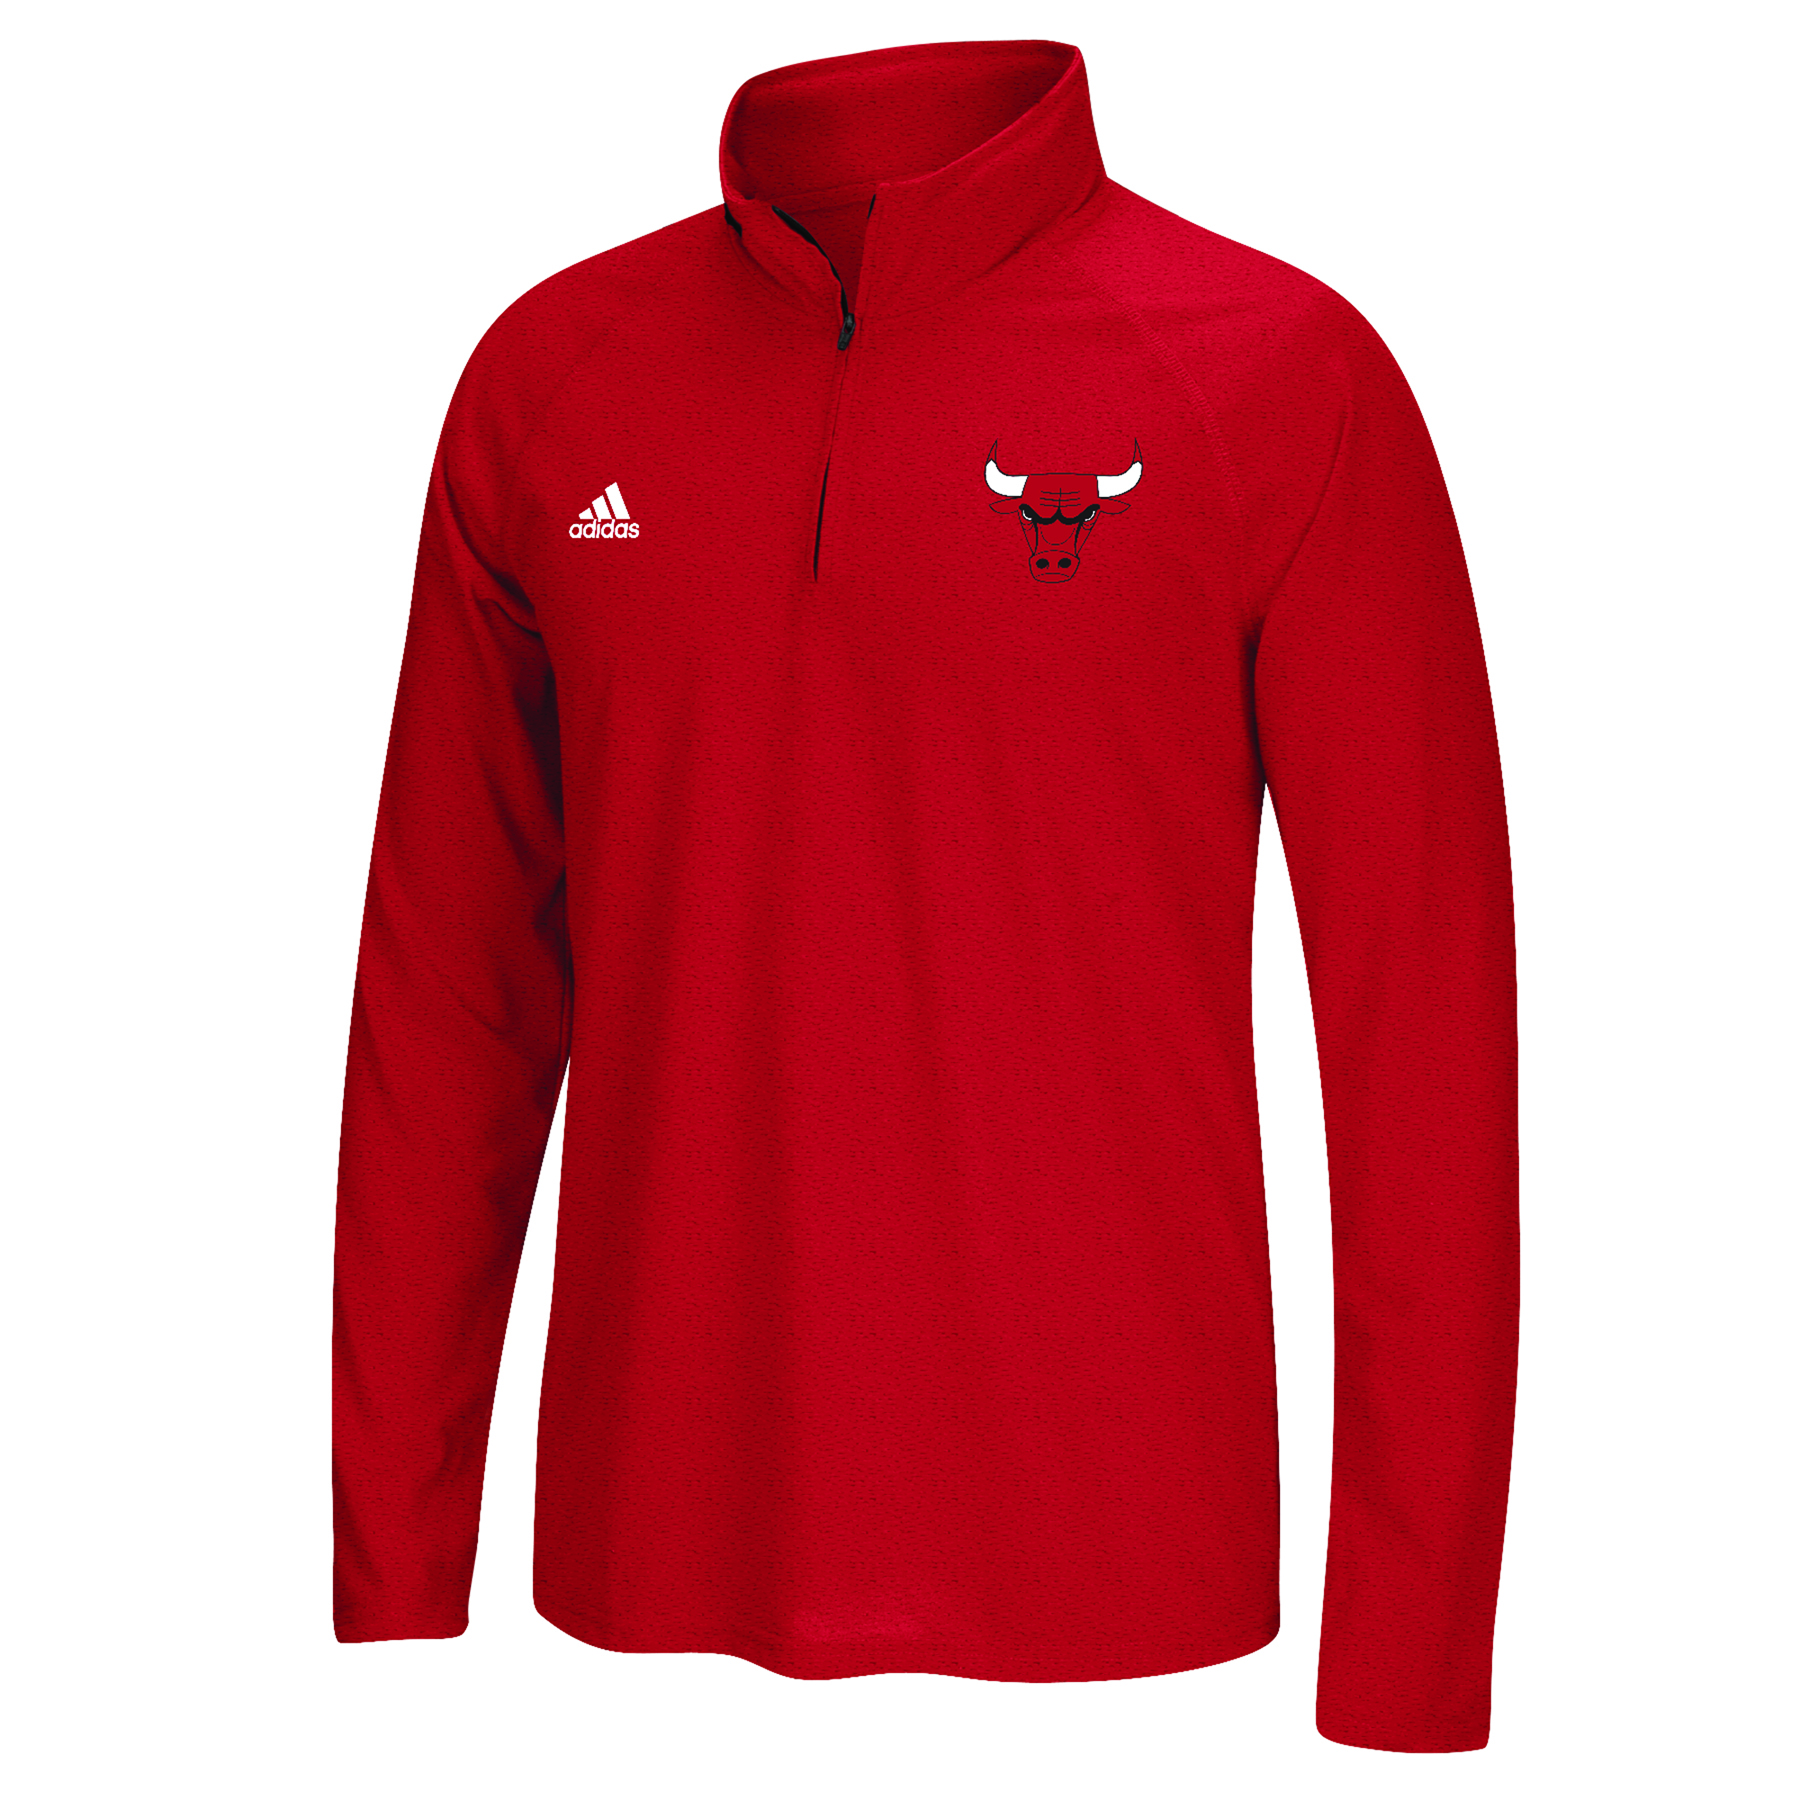 Chicago Bulls adidas Climalite 1/4 Zip Top - Mens